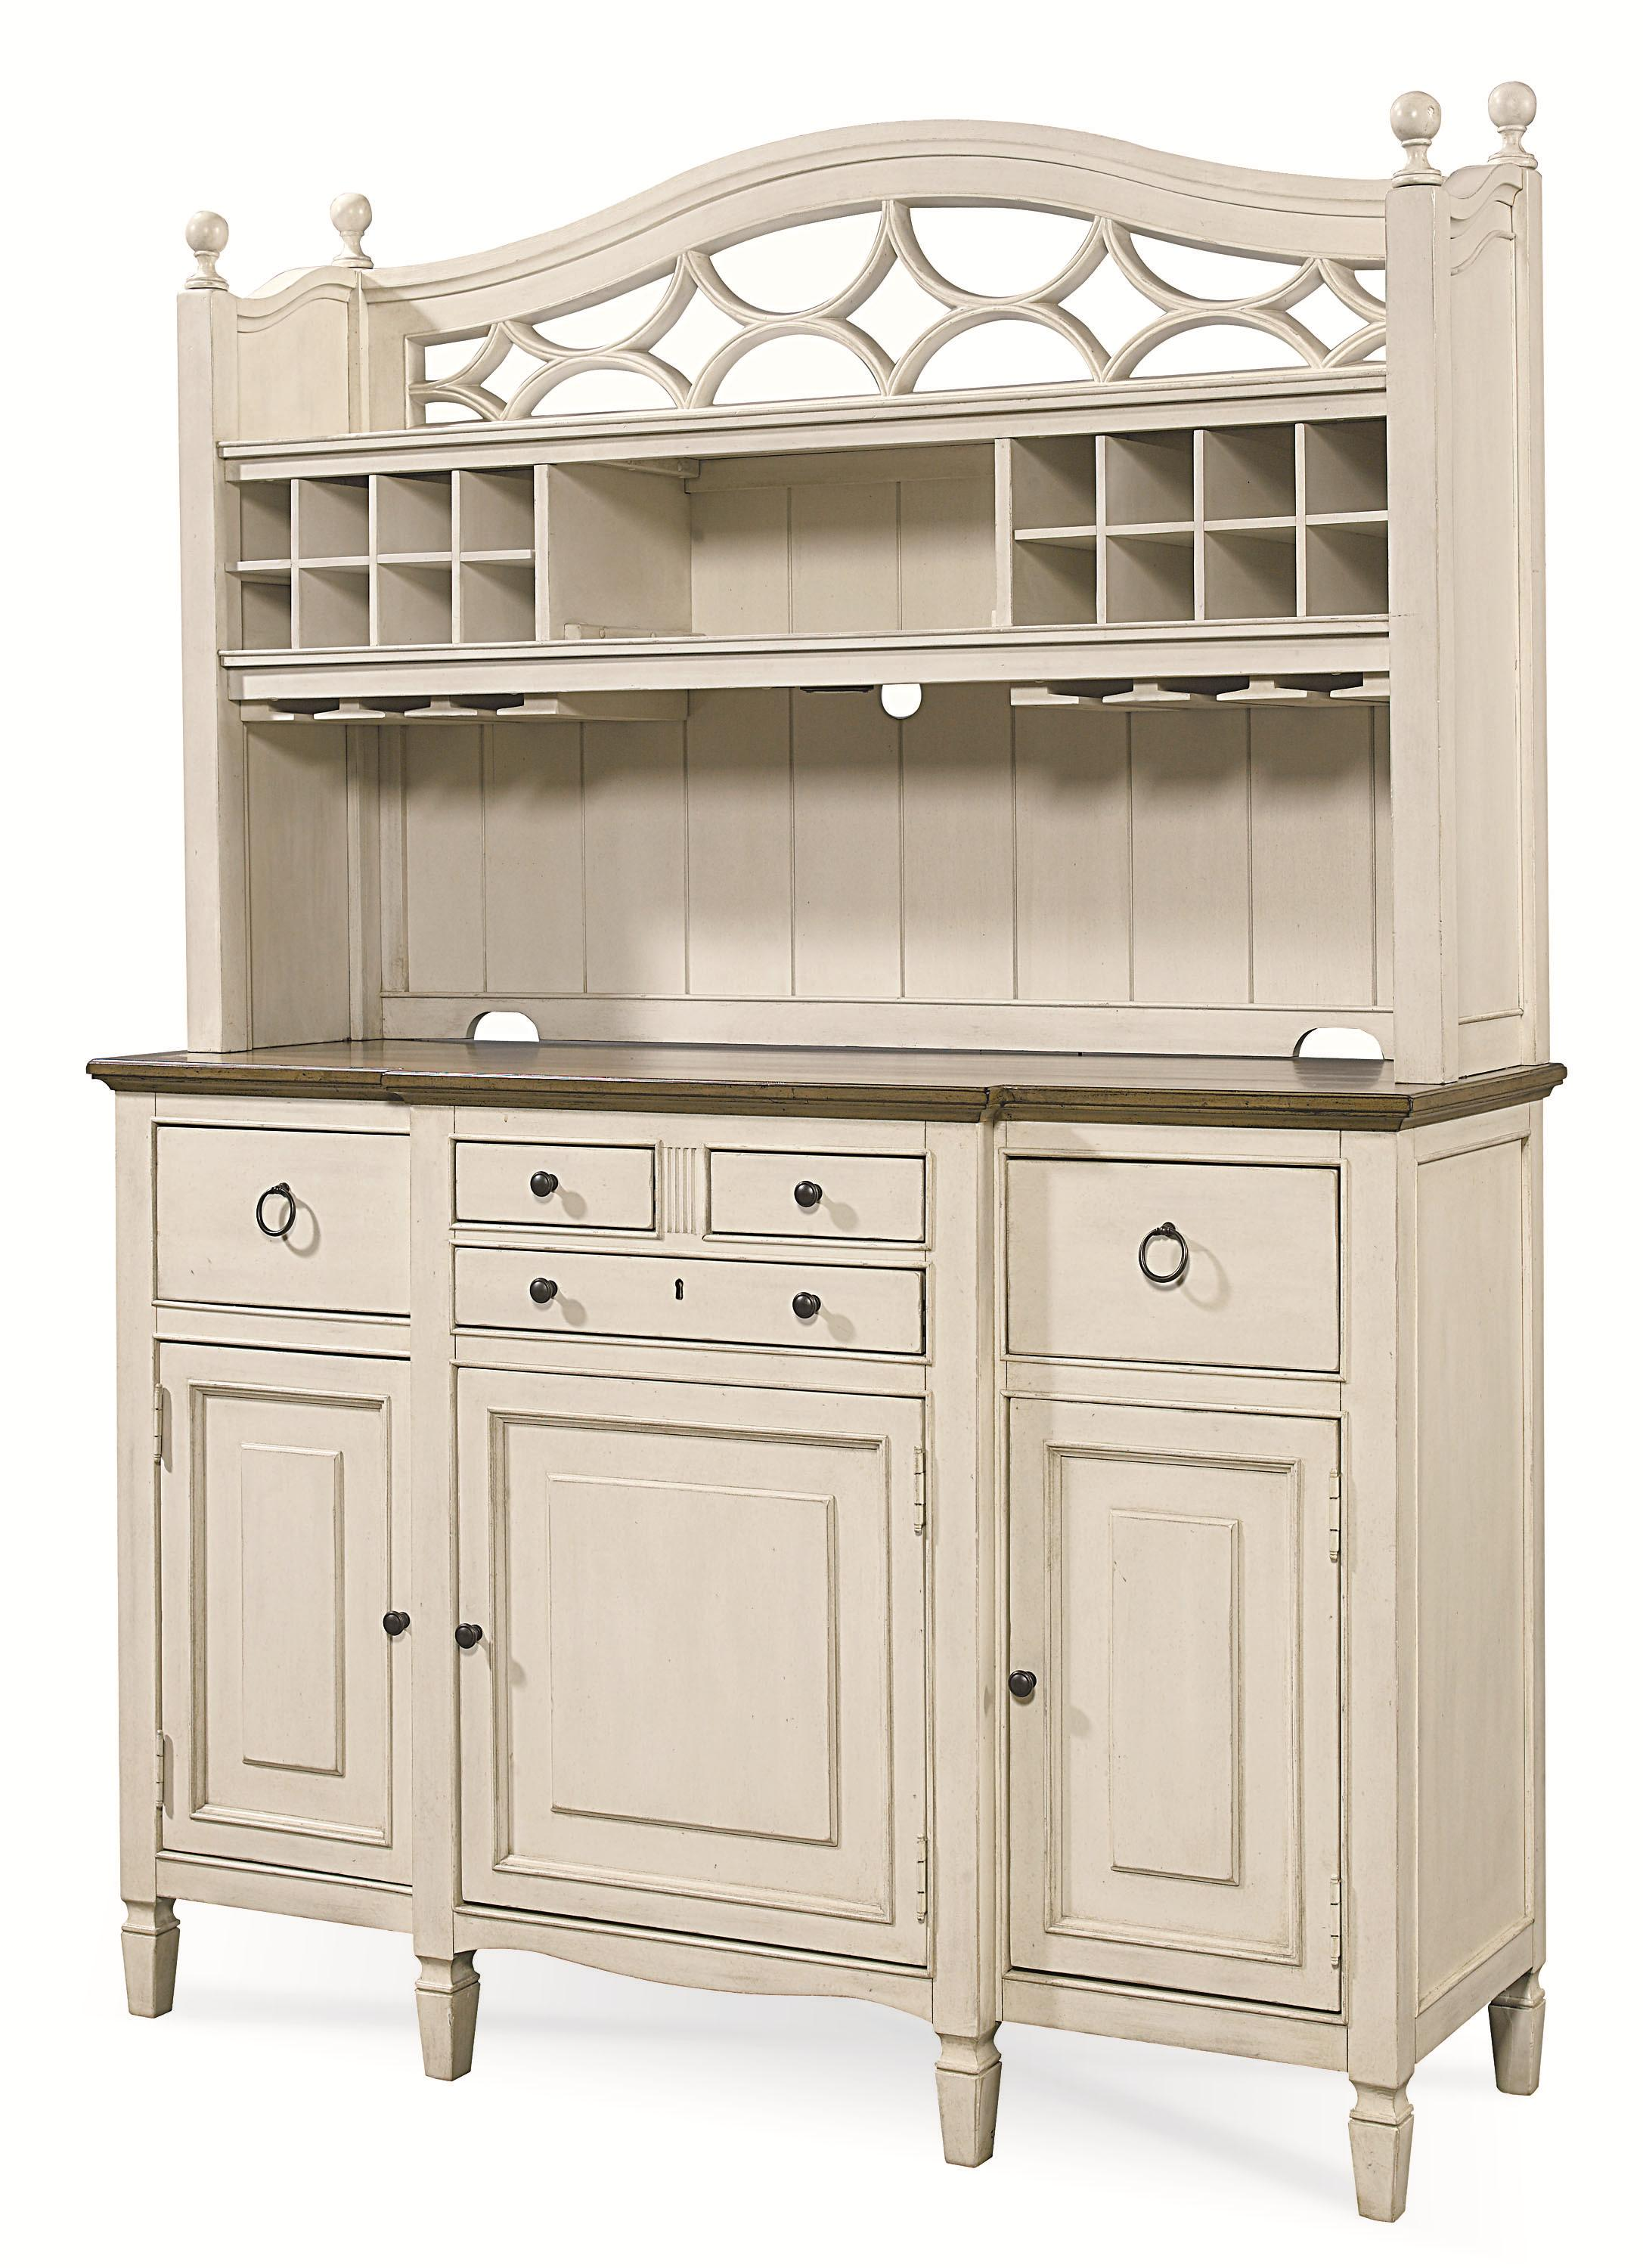 Morris Home Furnishings Summer Shade Summer Shade 2 Pc. Buffet and Hutch - Item Number: 987670C